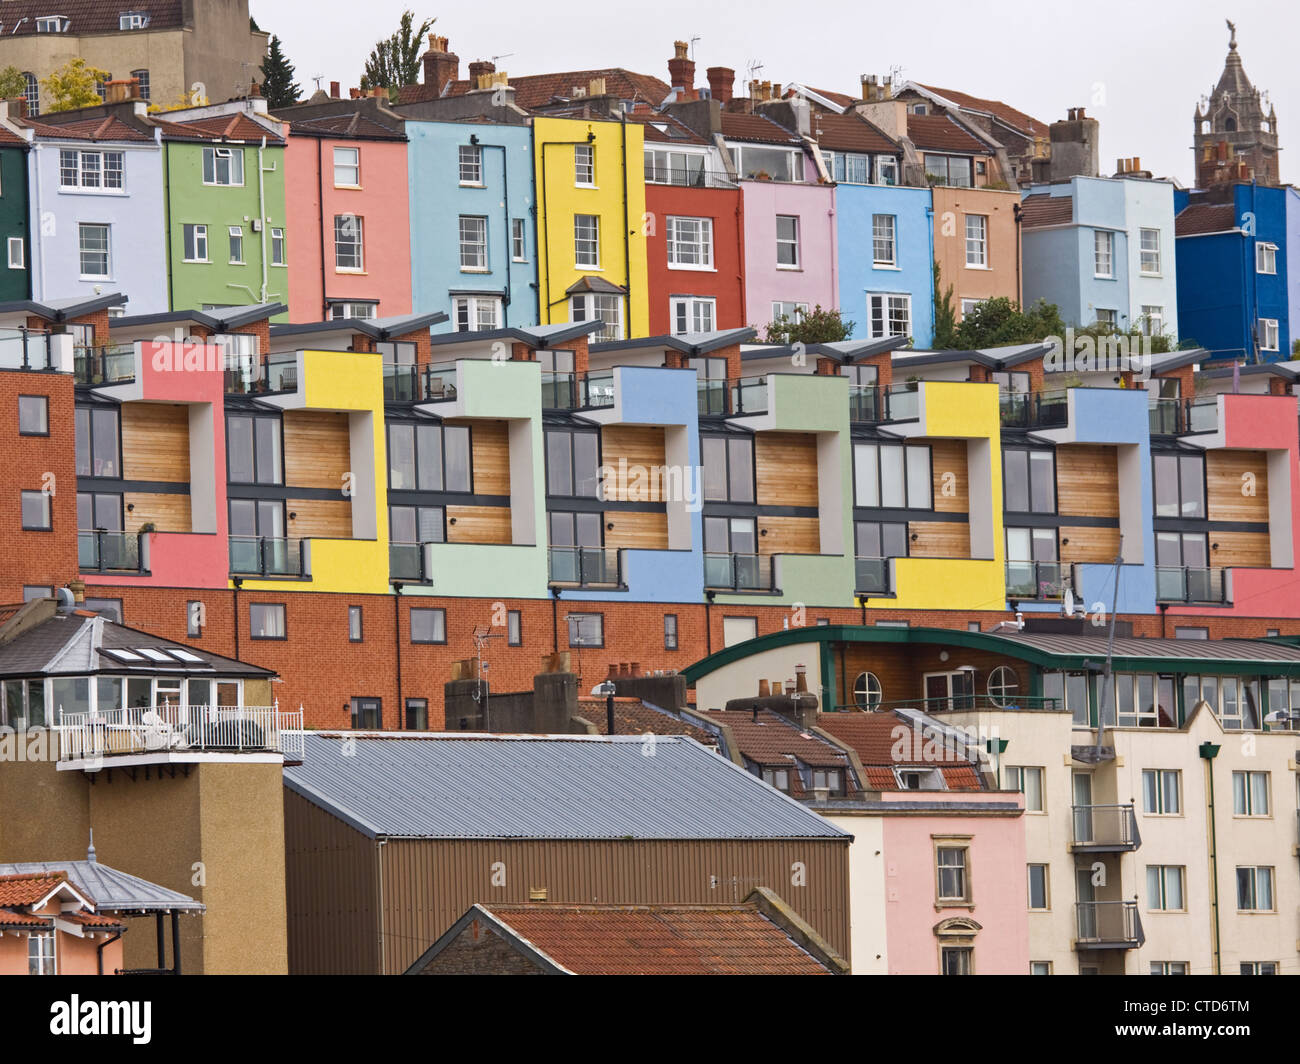 a mix of old and new houses and apartments overlooking bristol